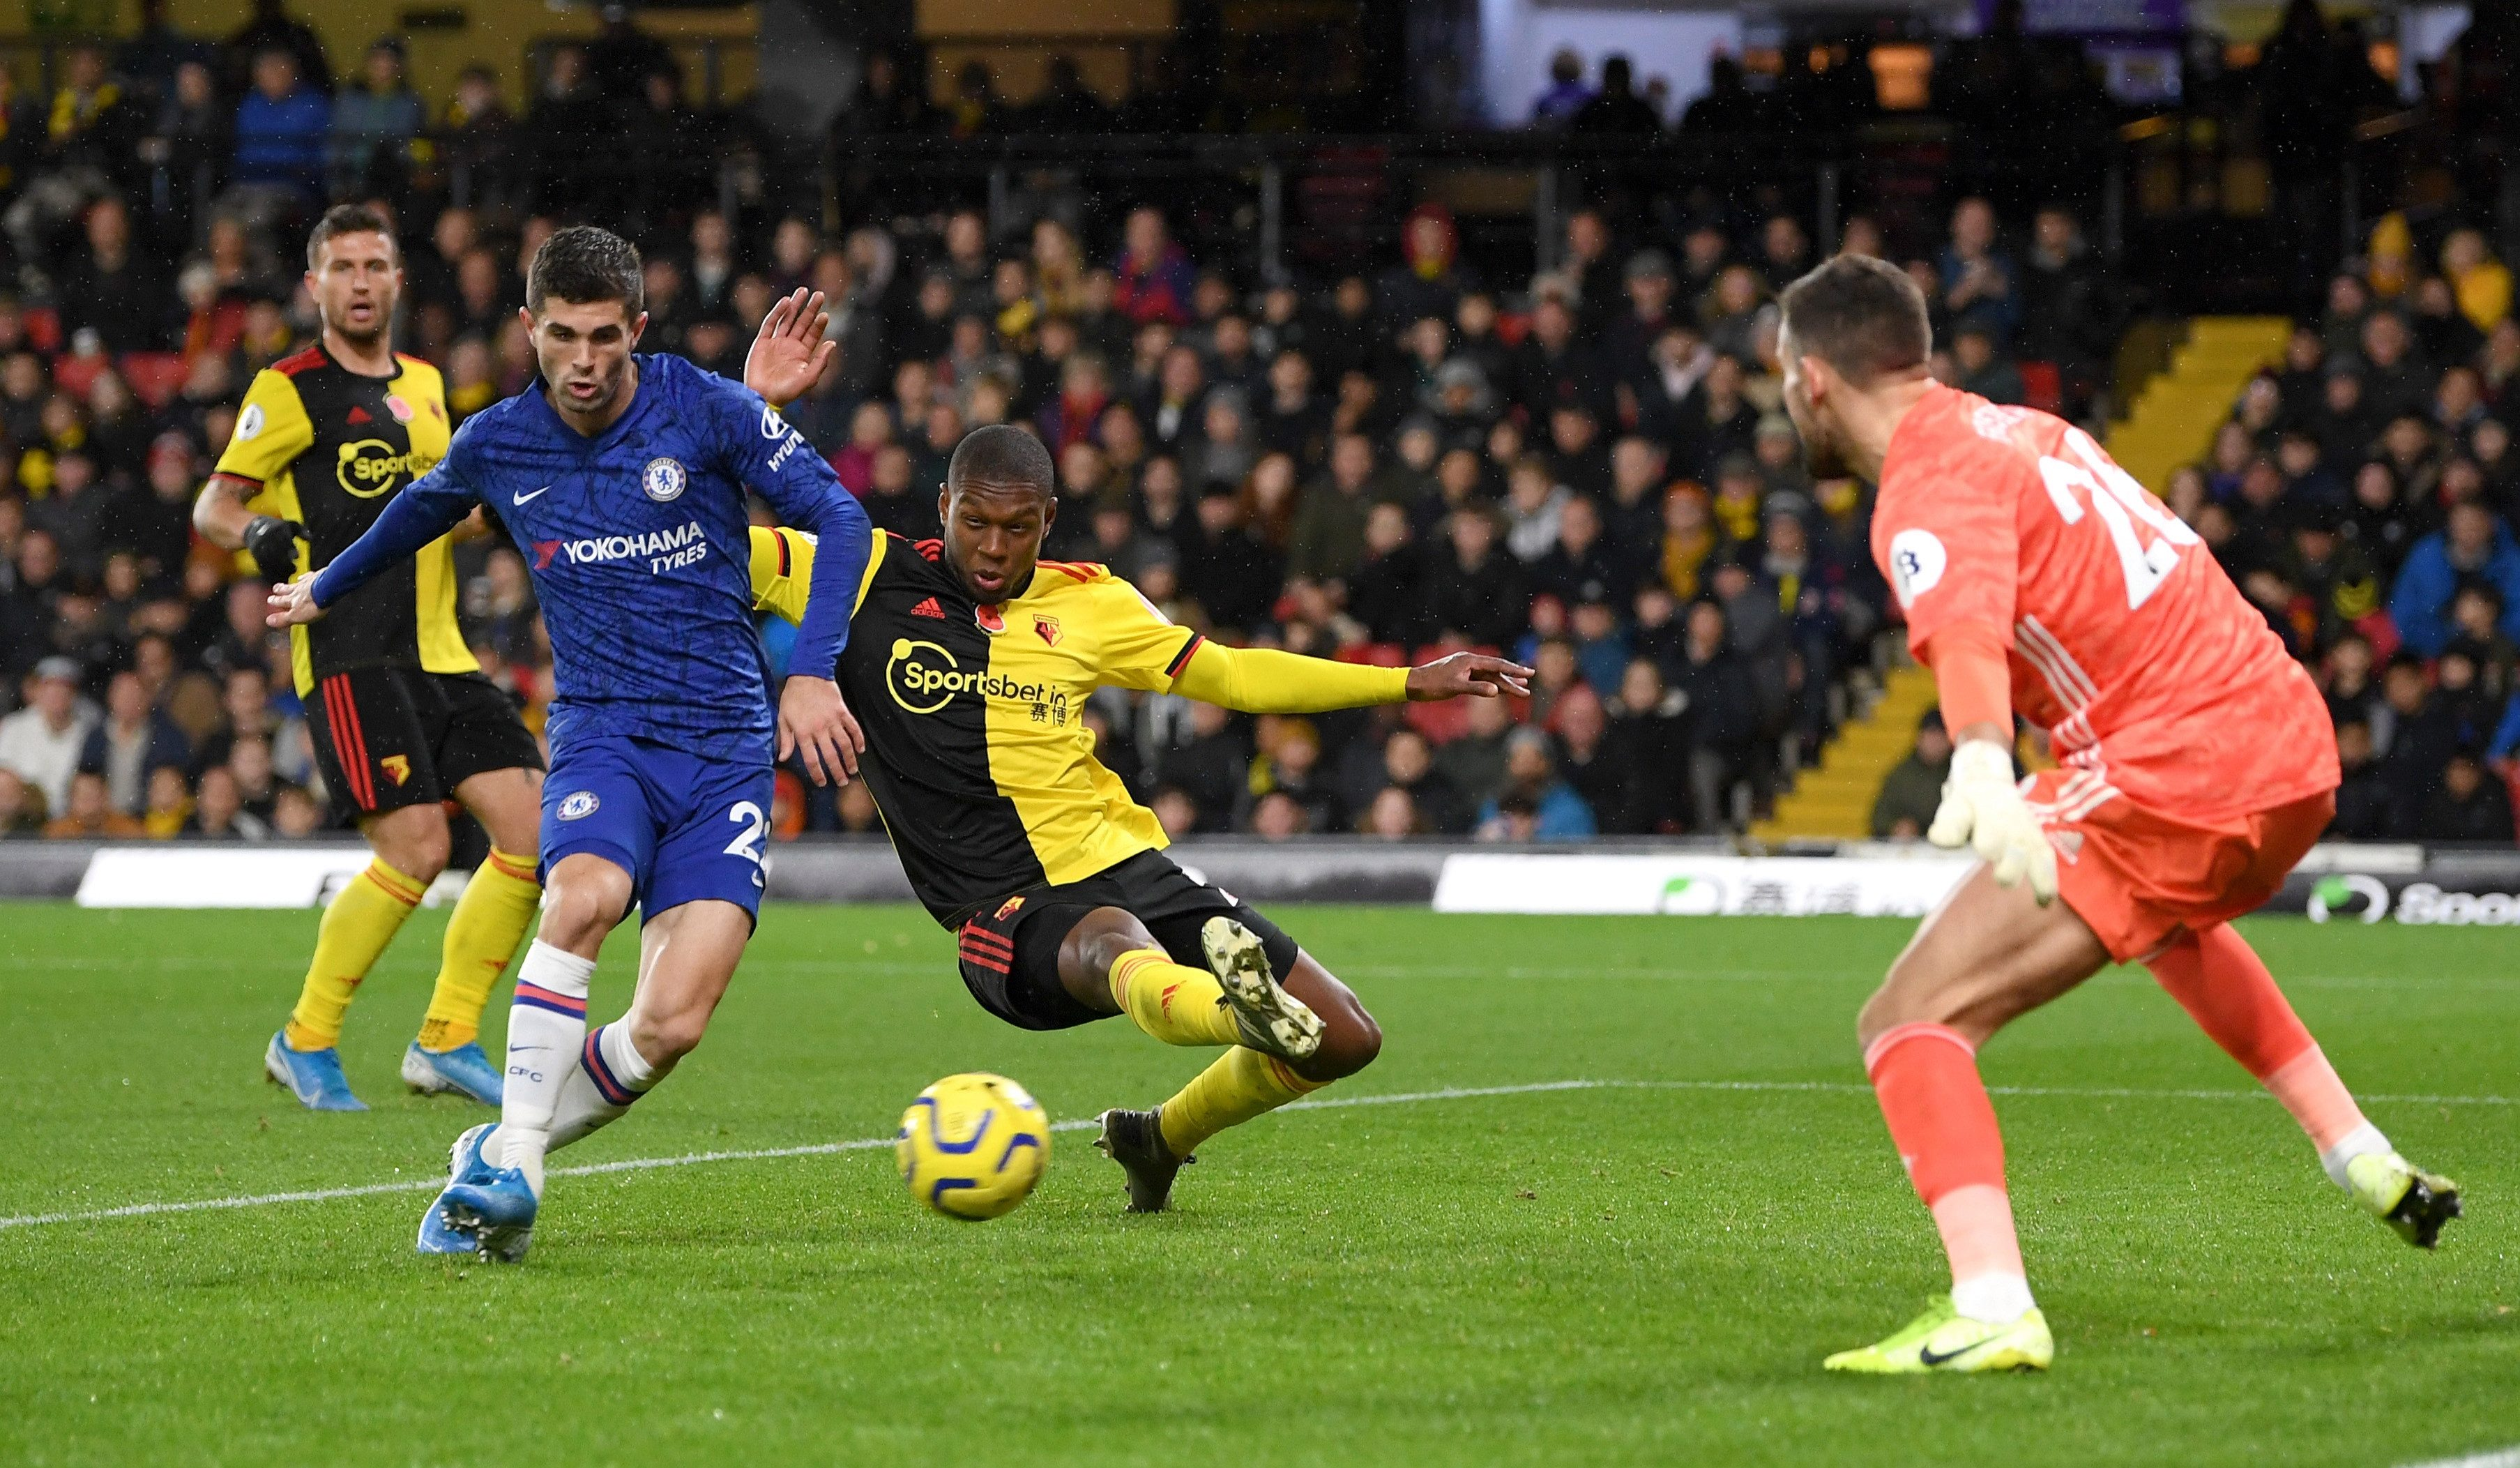 Christian Pulisic stays calm to slot home a Tammy Abraham cross and double the Chelsea lead against Watford